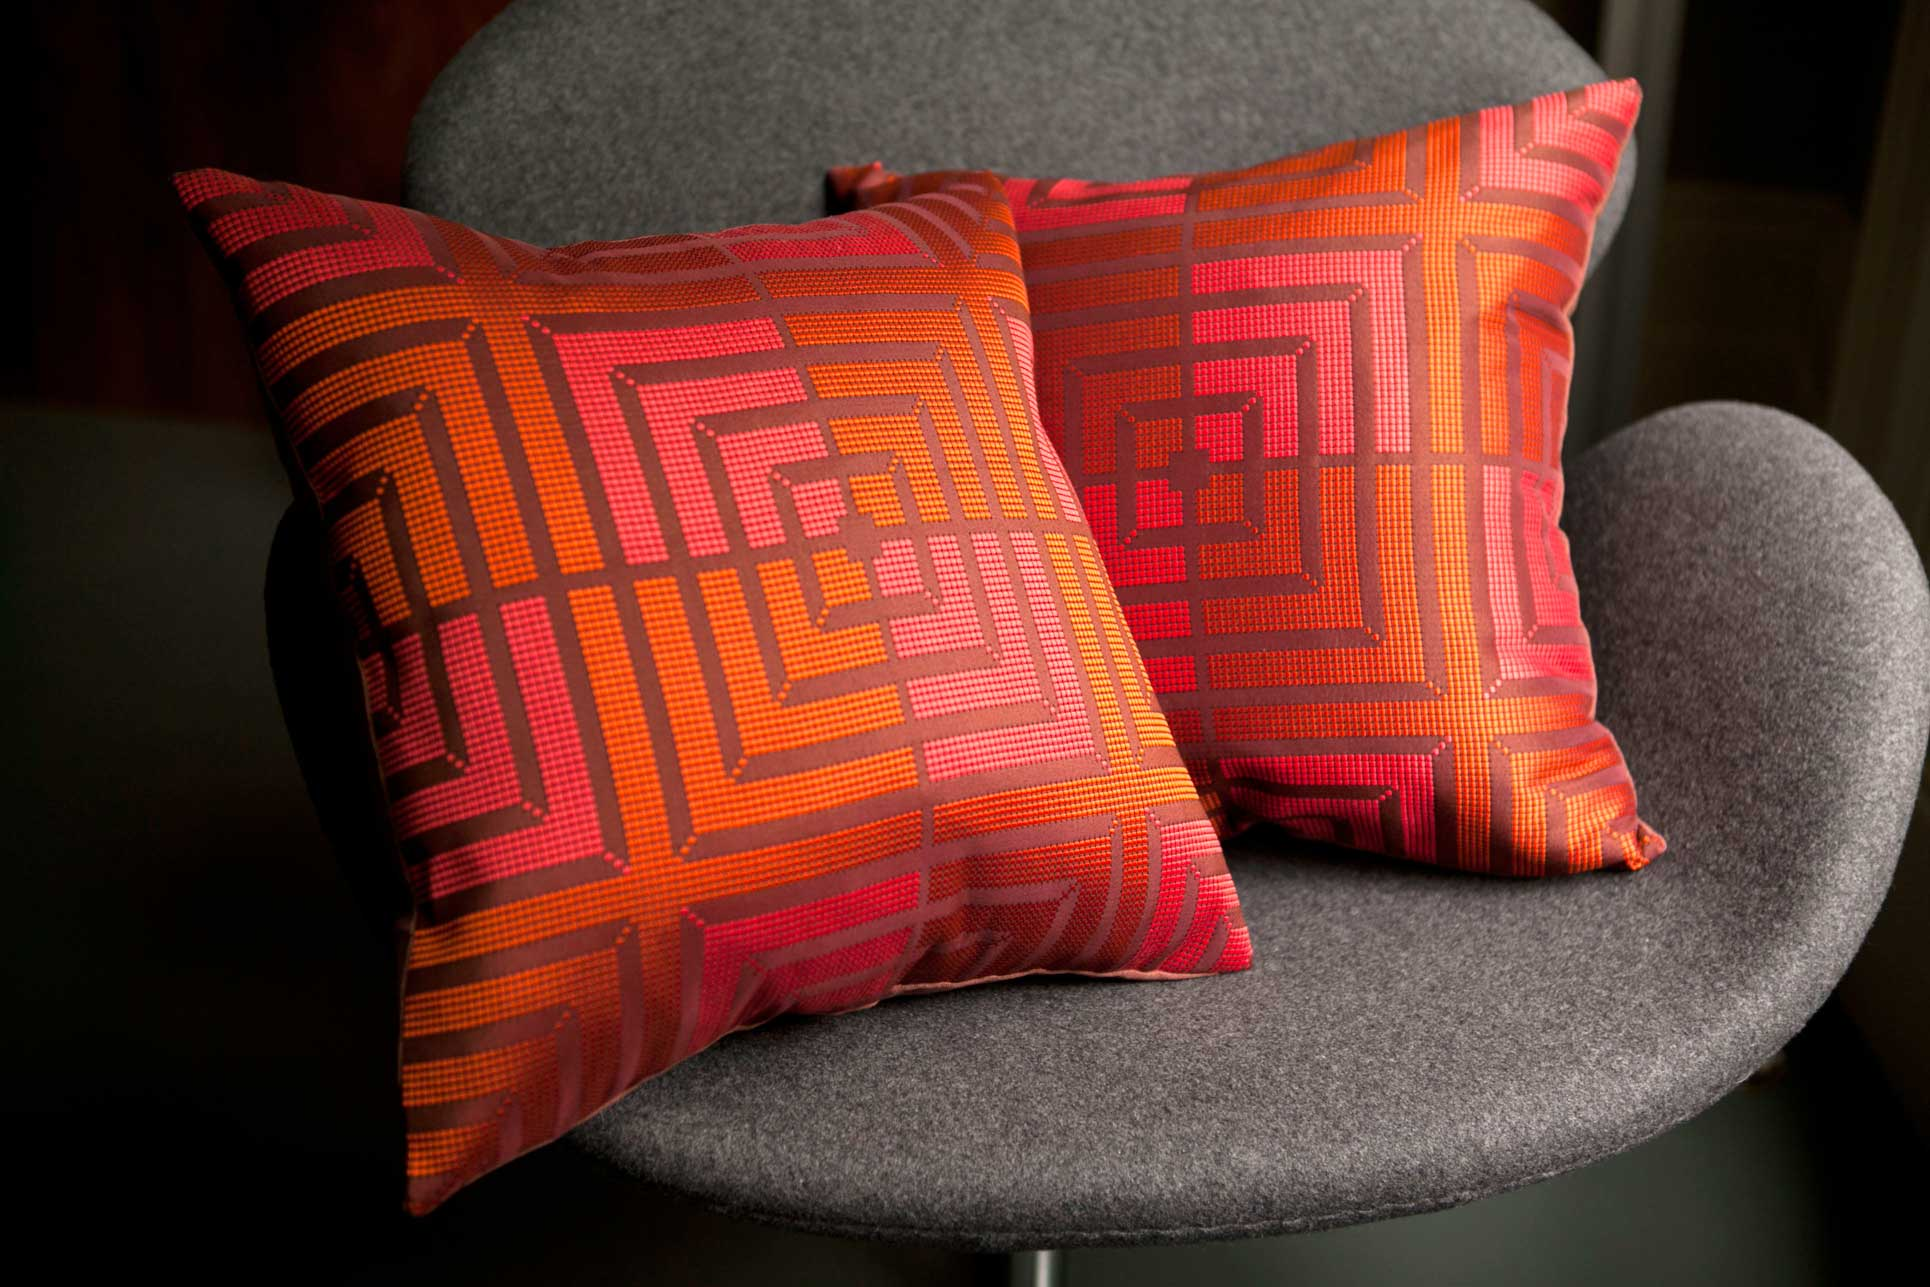 Red square cushions